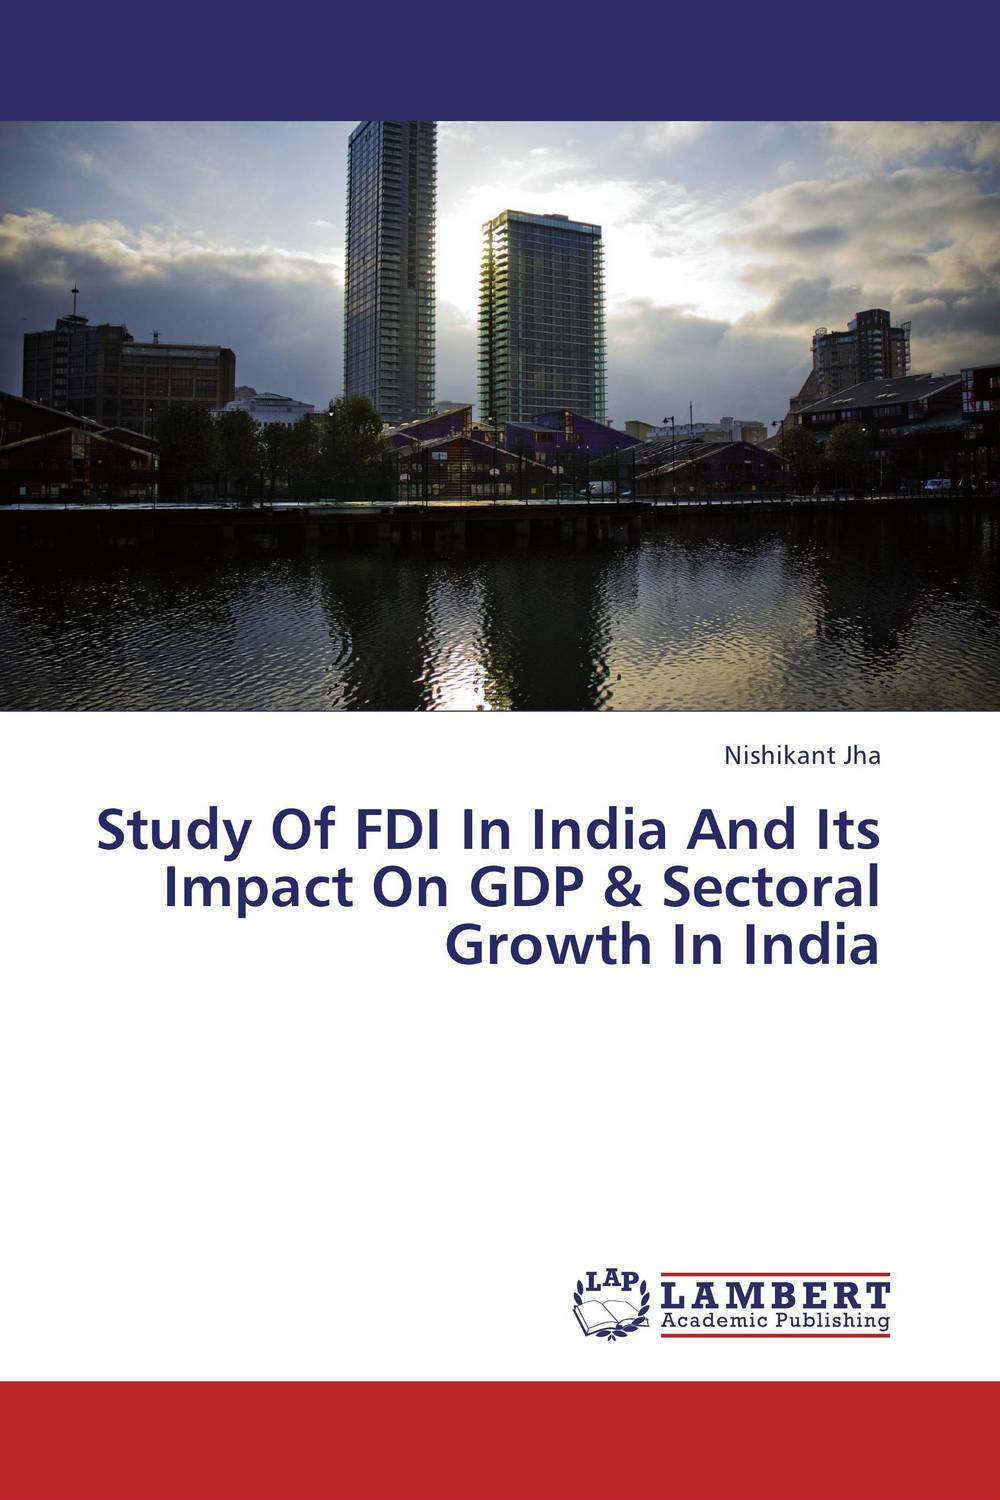 Study Of FDI In India And Its Impact On GDP & Sectoral Growth In India купить